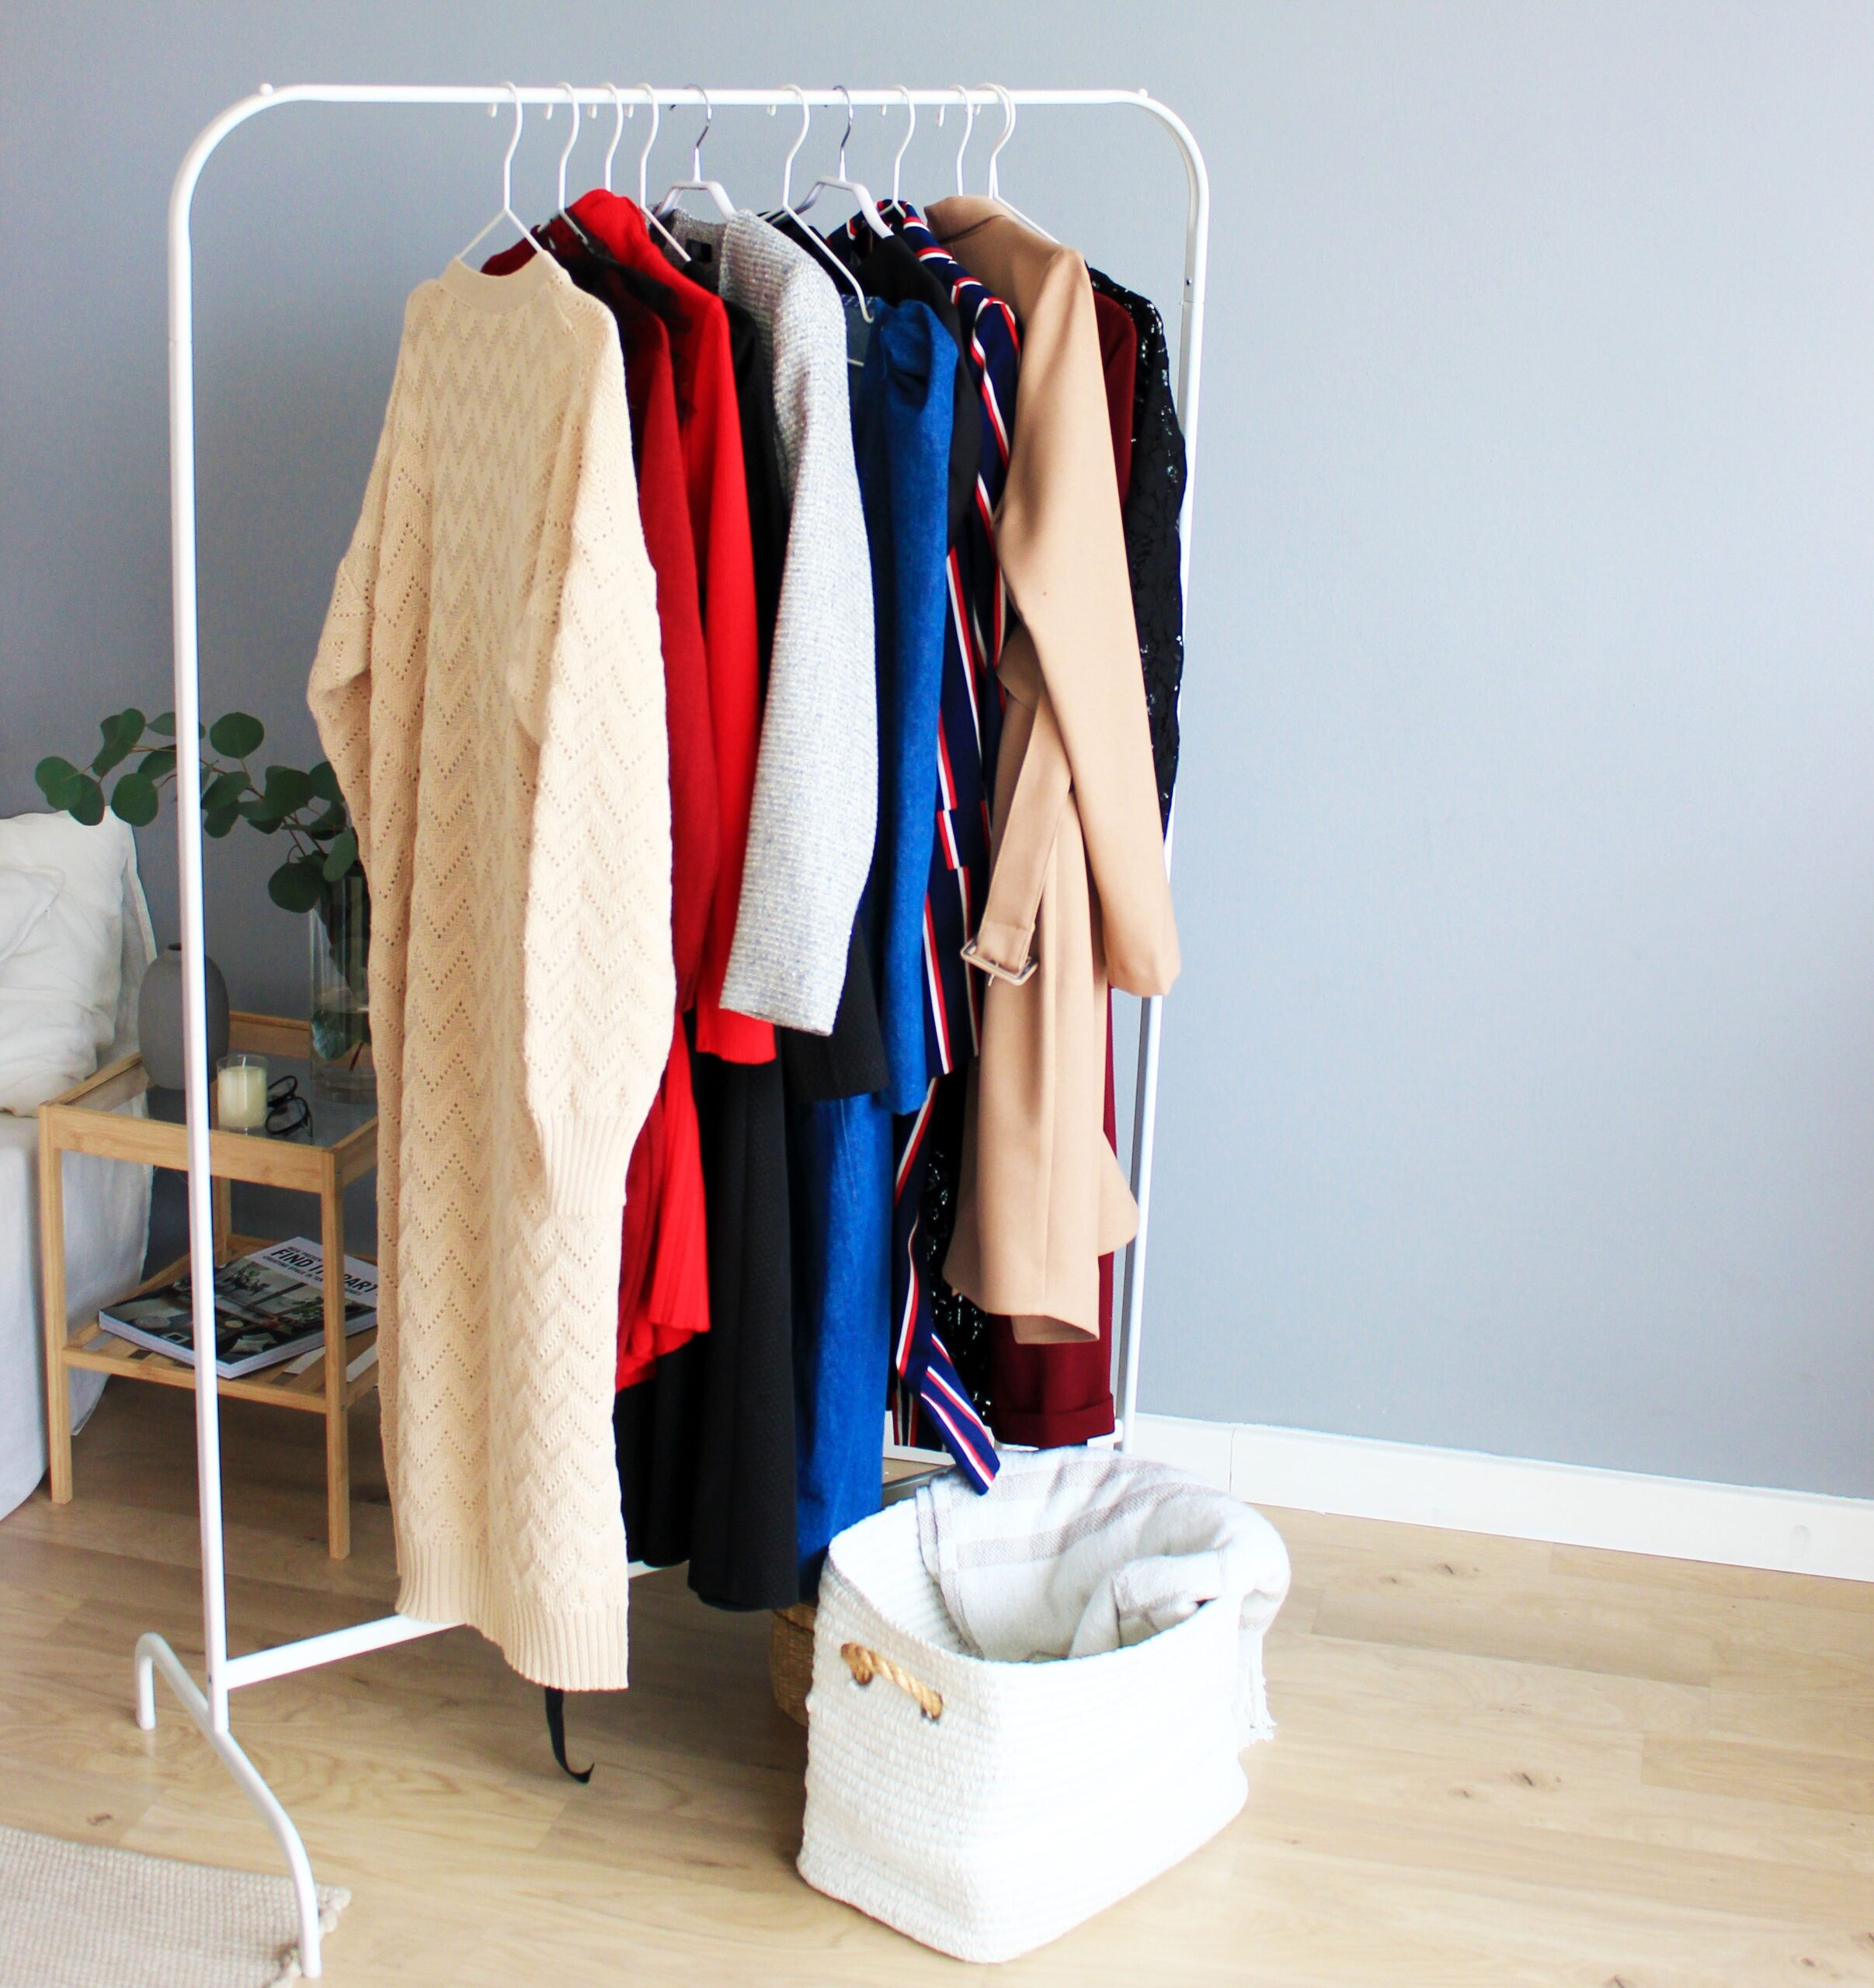 drying hanging clothes